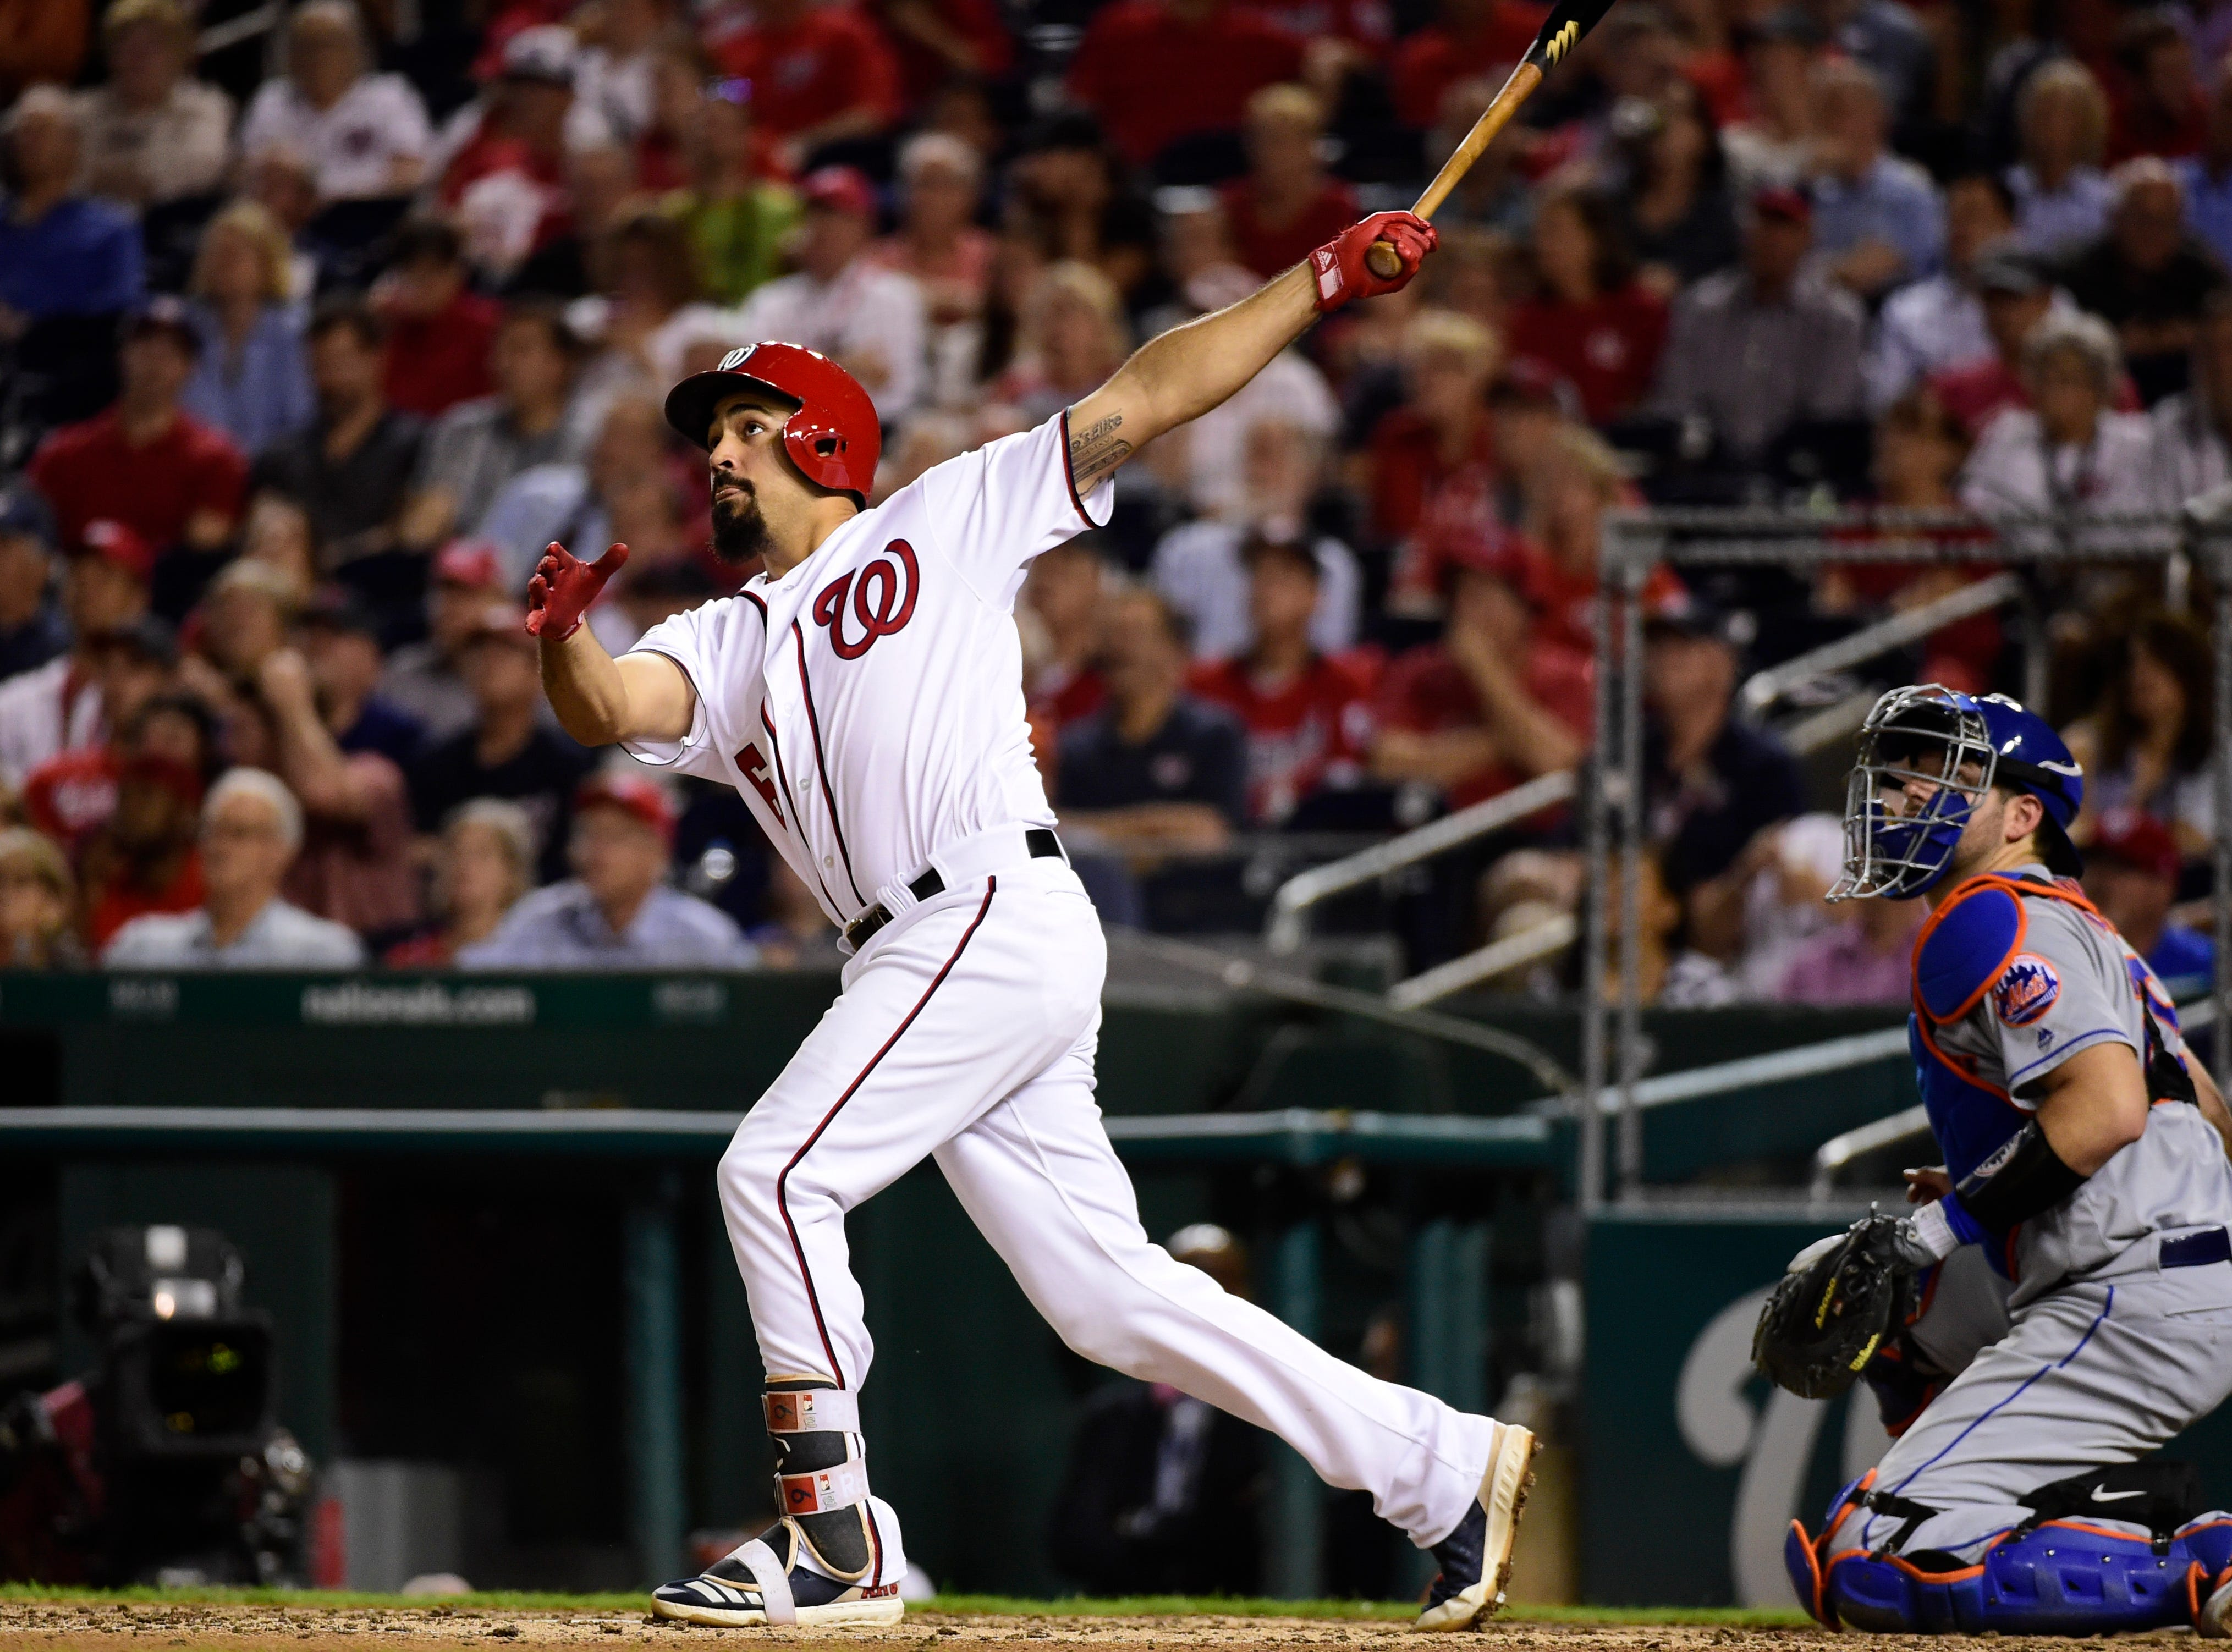 33. Anthony Rendon, Washington Nationals third baseman.